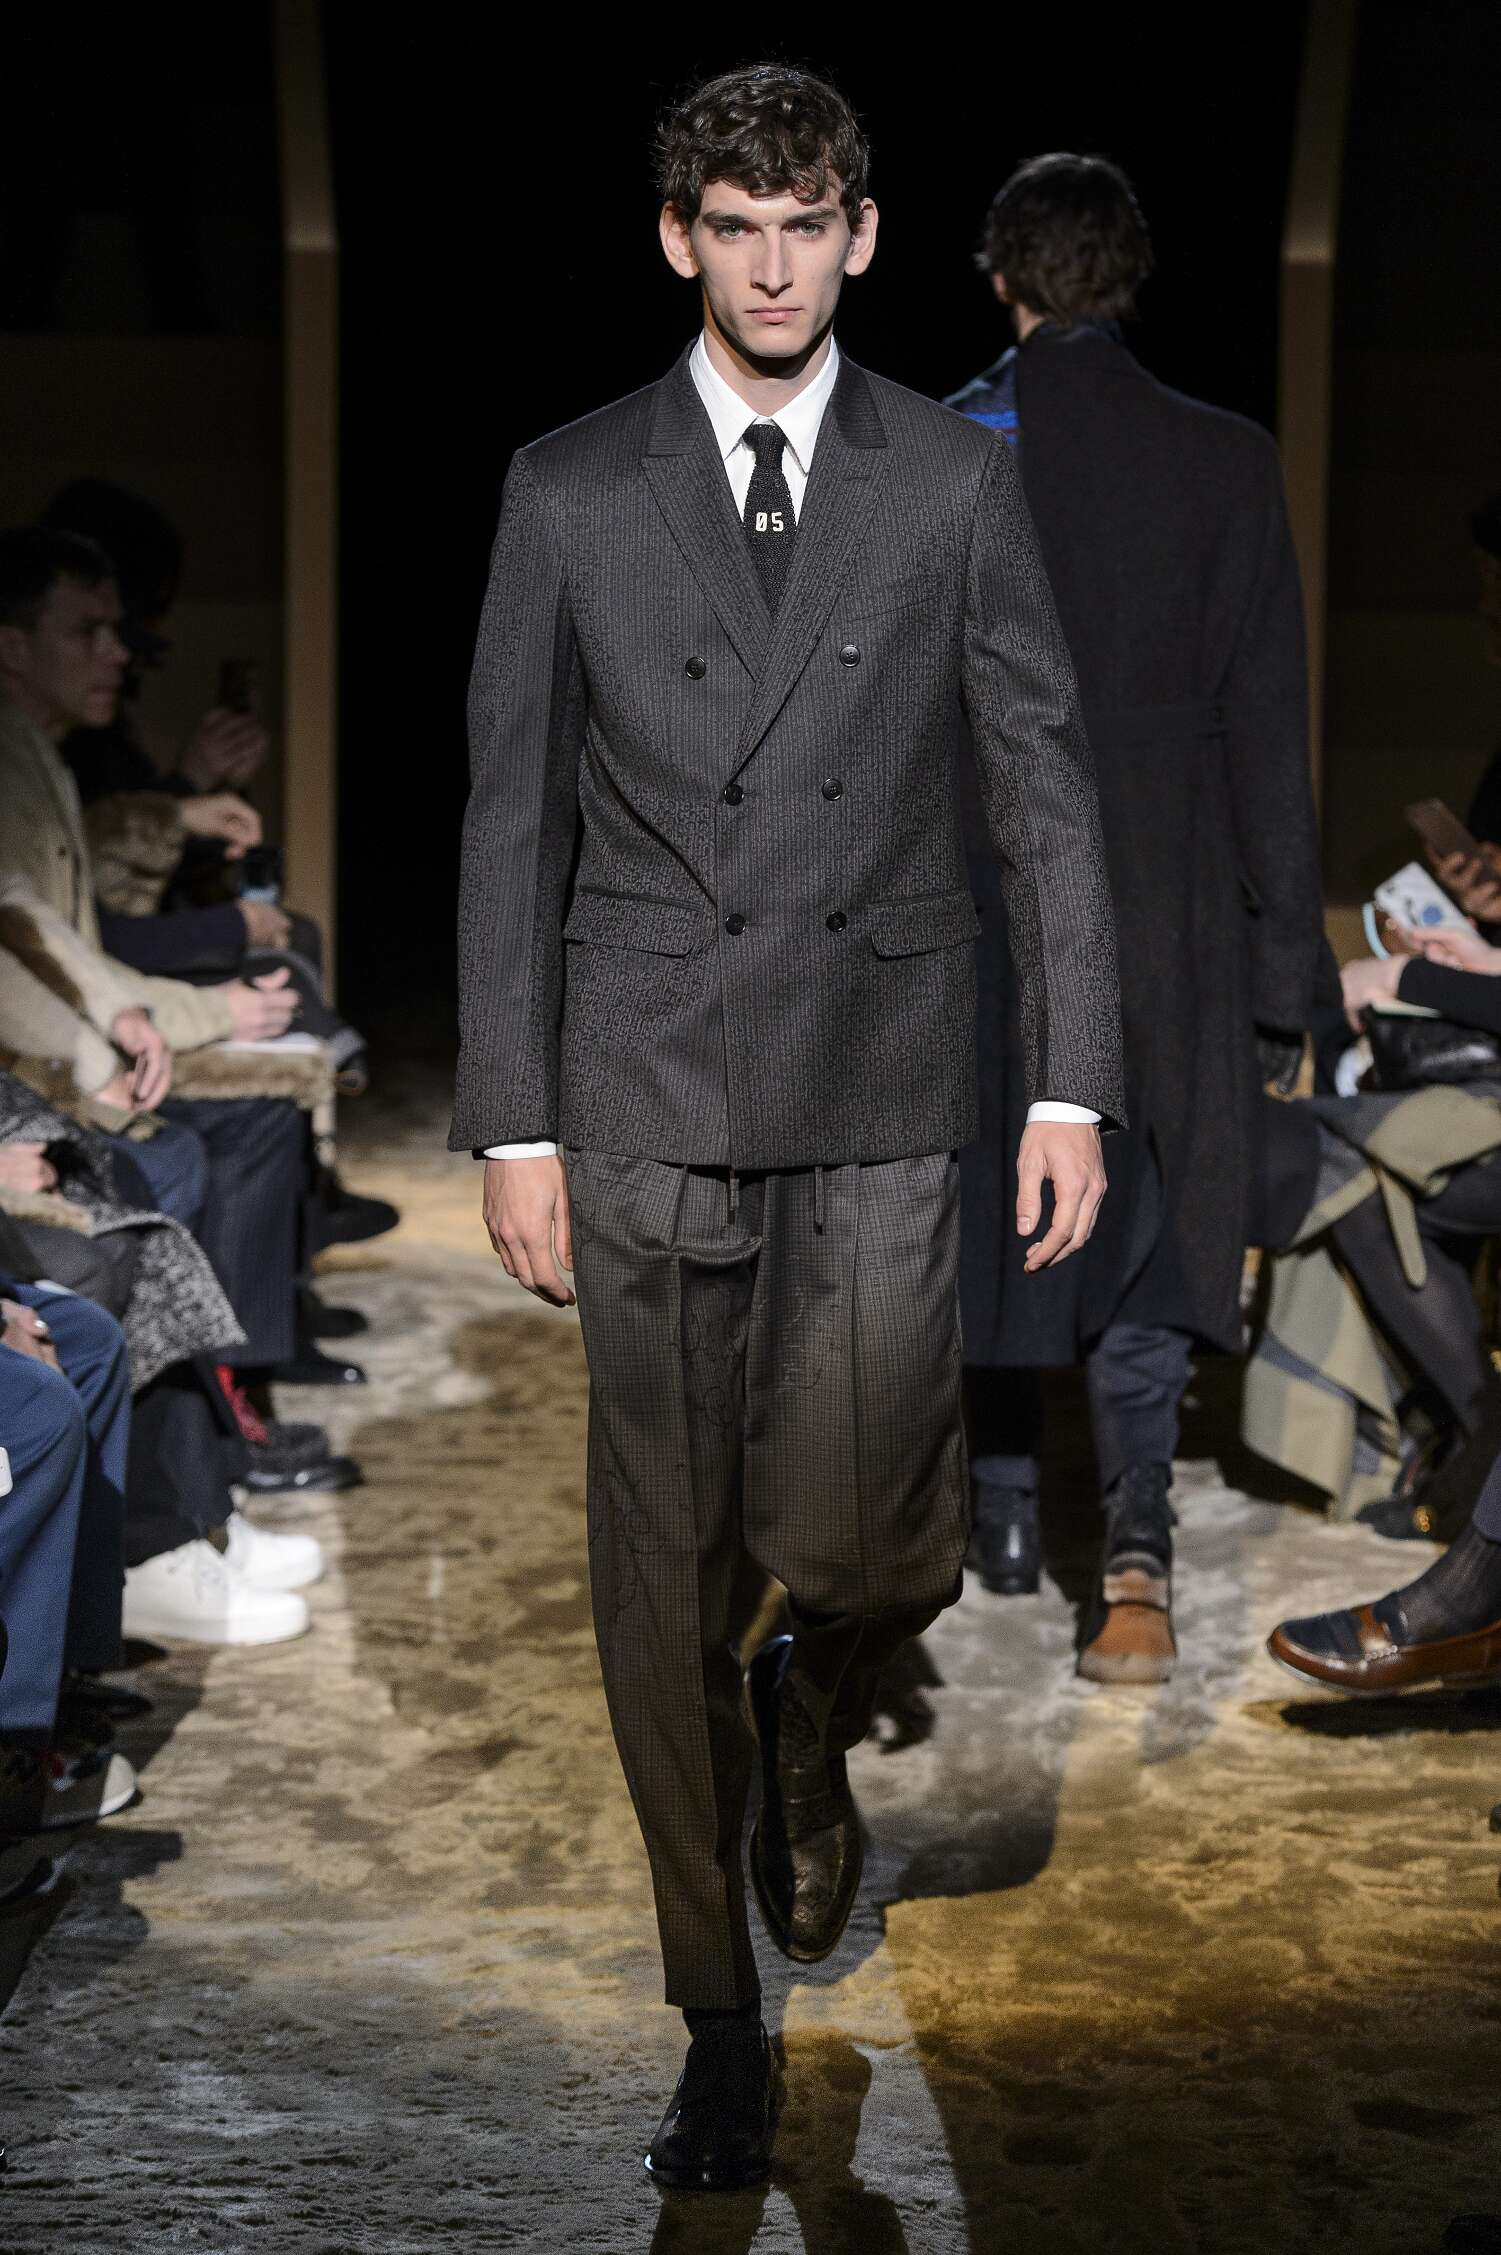 Fall 2016 17 Man Fashion Show Ermenegildo Zegna Couture